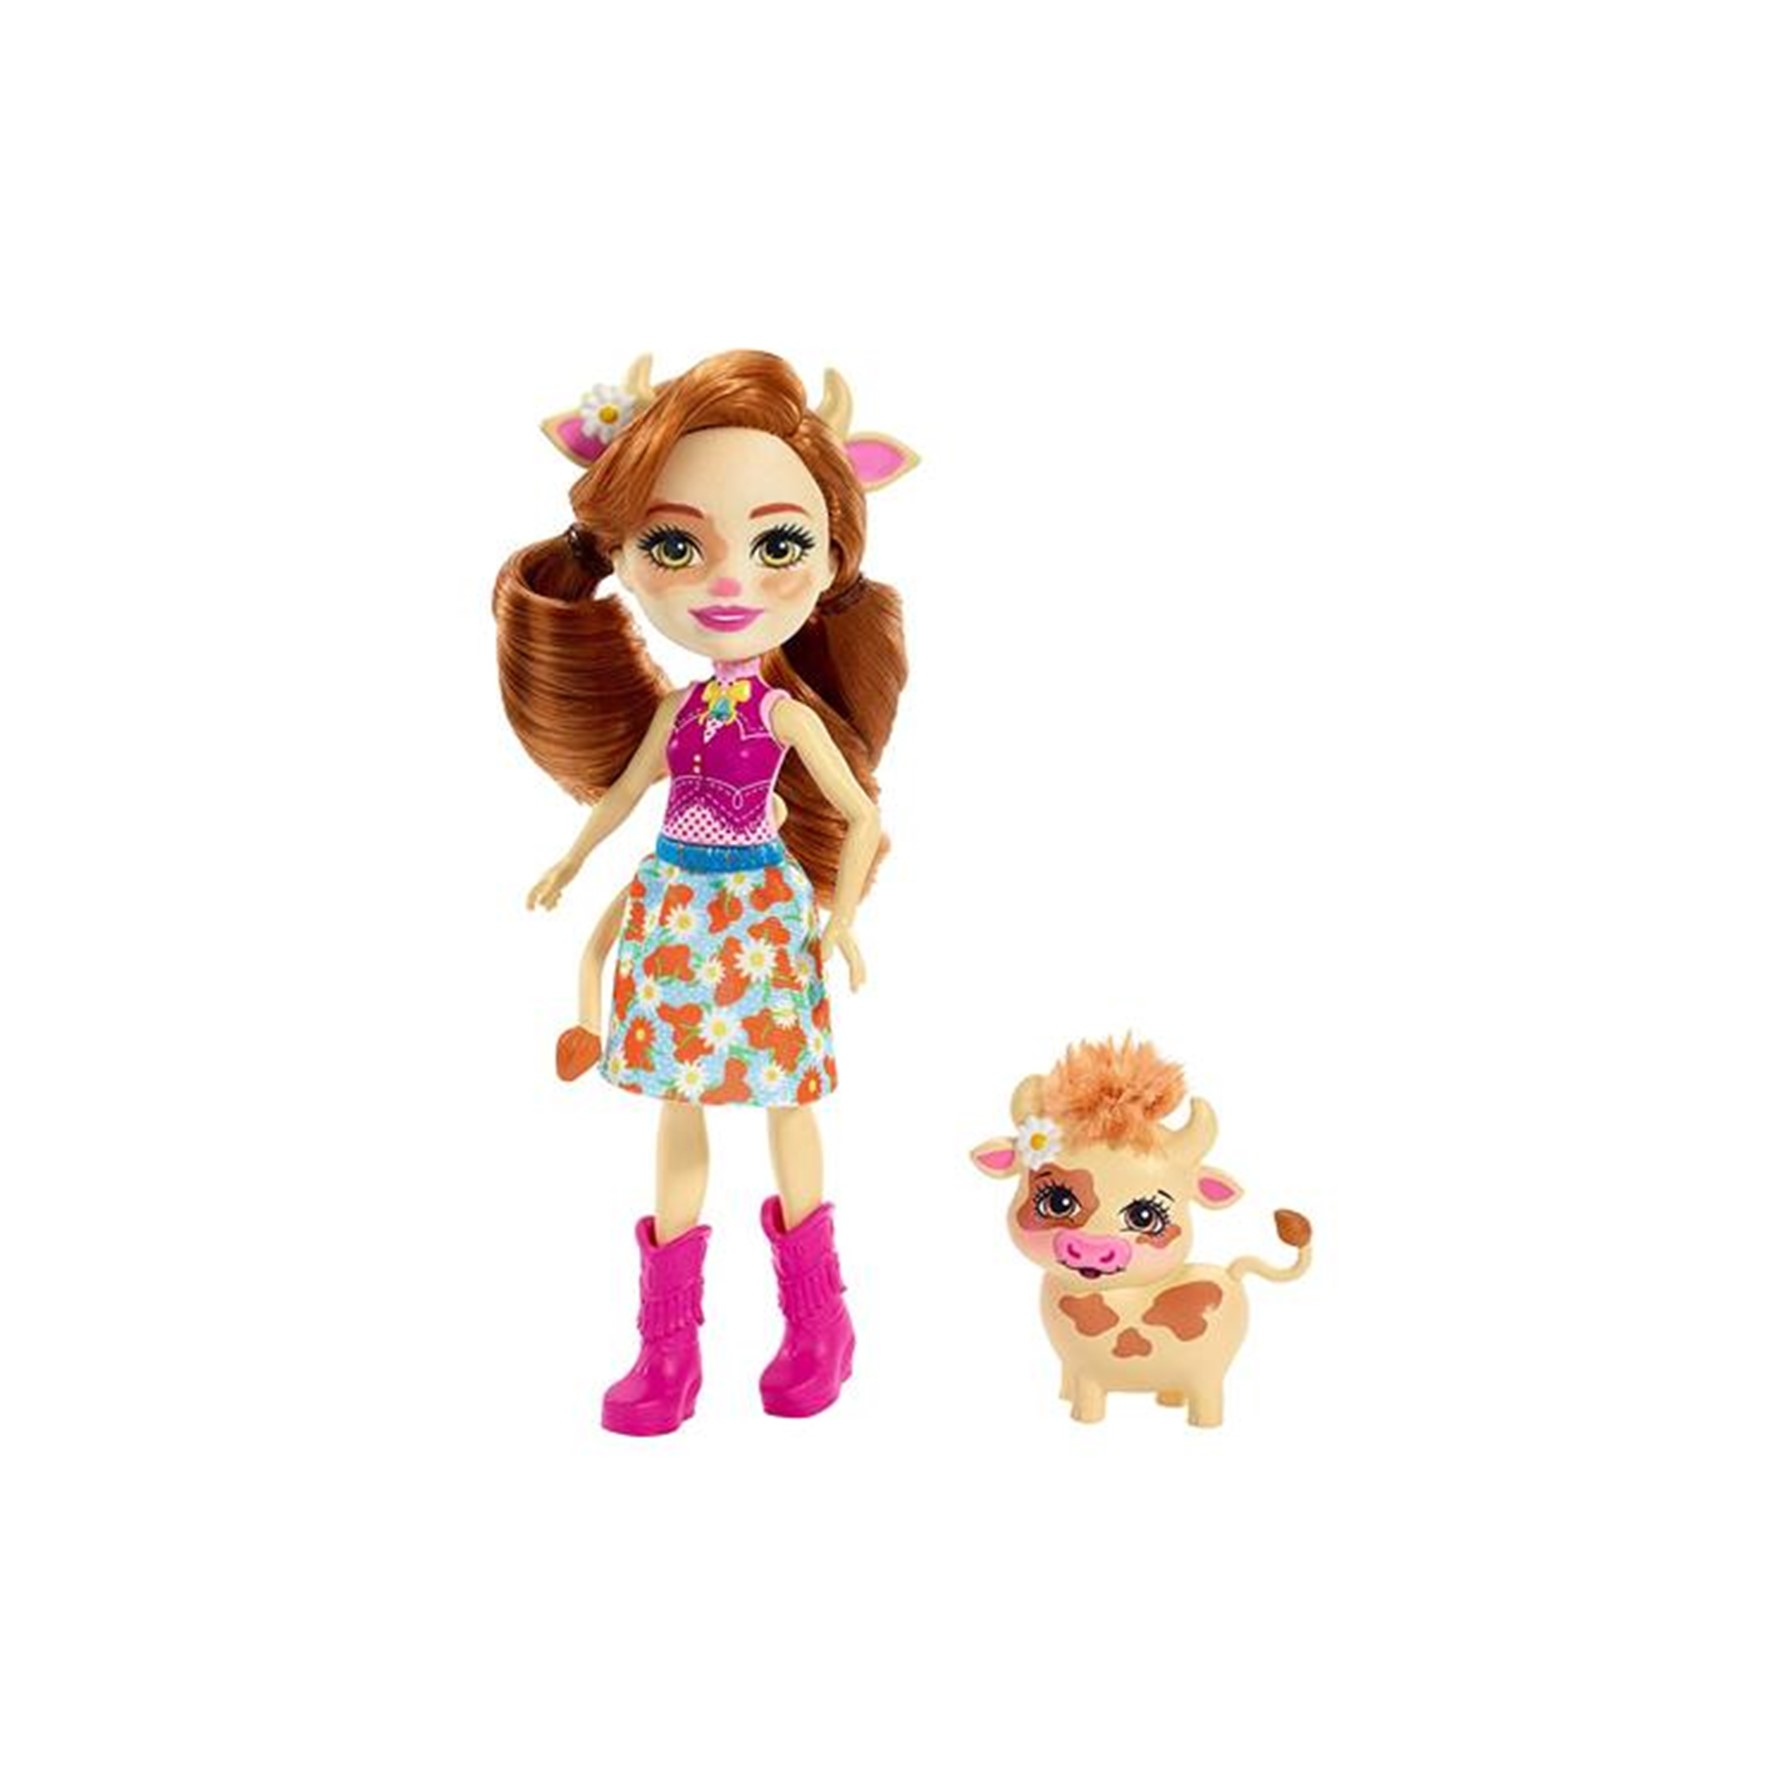 Enchantimals Cailey Cow Y Curdle